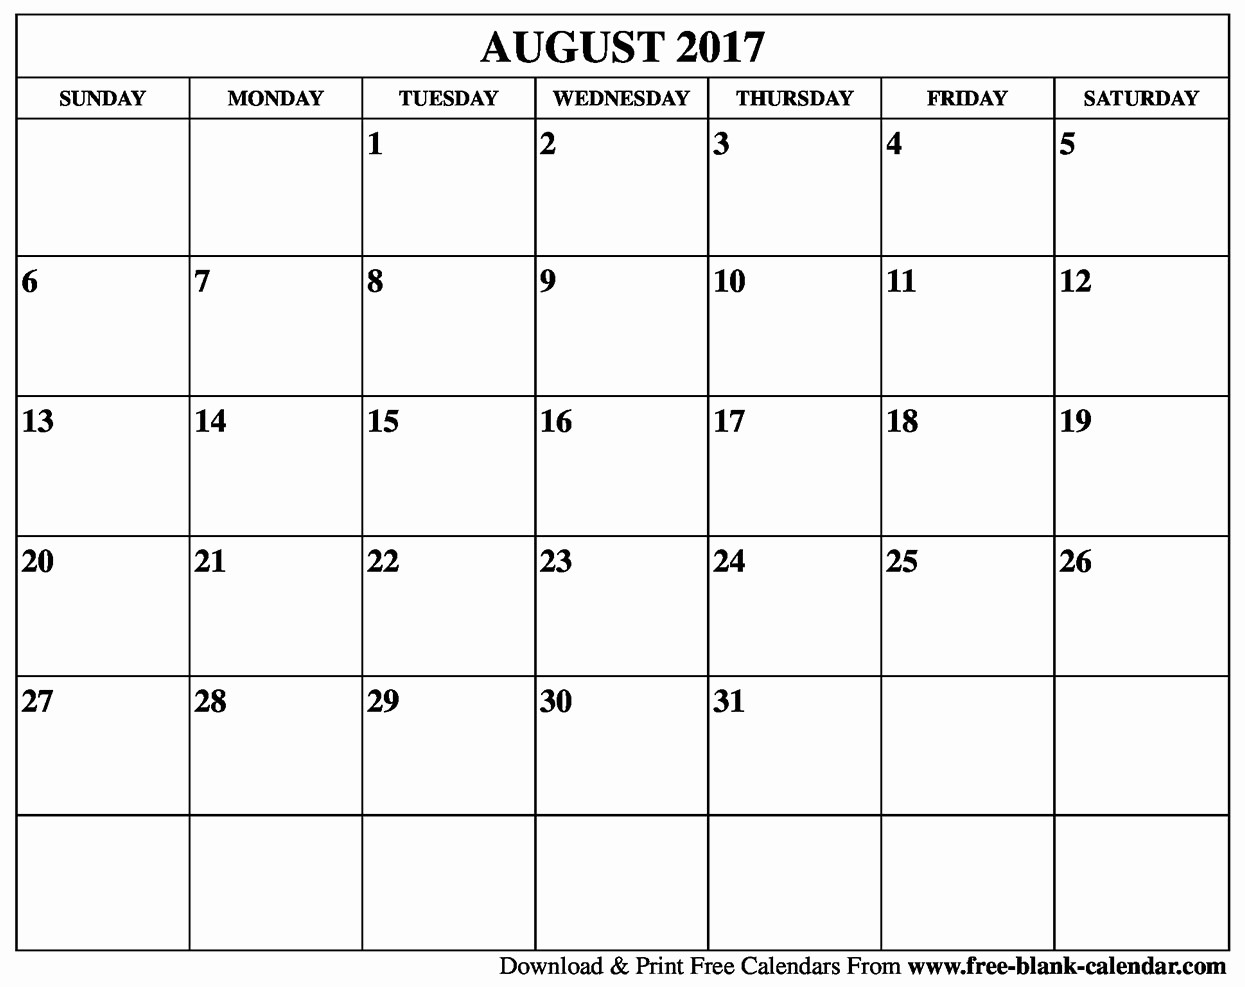 Blank Calendar Template August 2017 Inspirational Blank August 2017 Calendar Printable